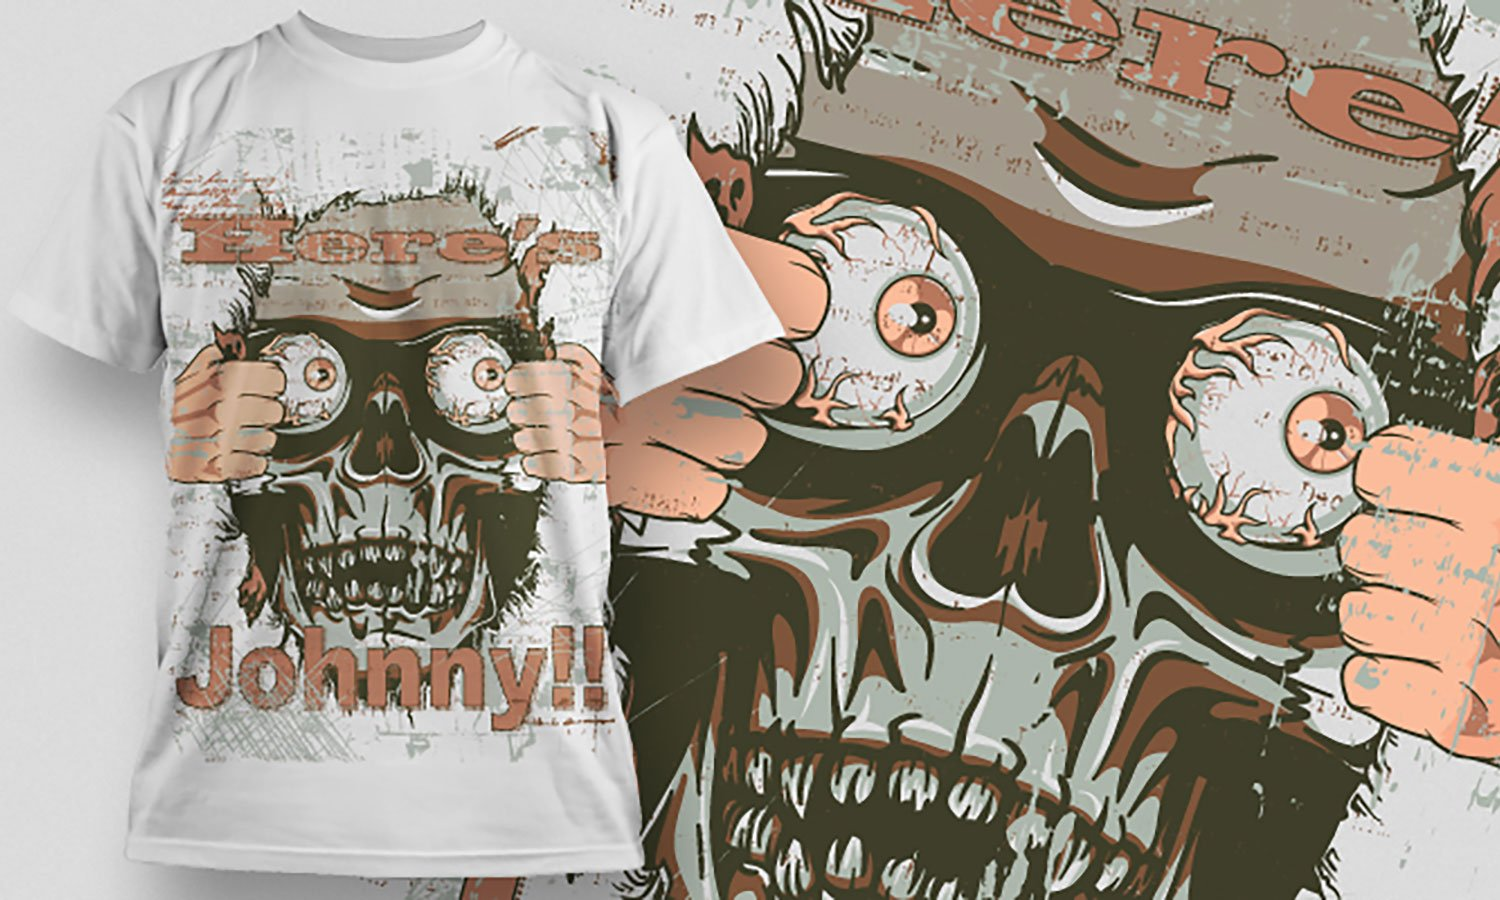 Johnny - Printed T-Shirt for Men, Women and Kids - TS289